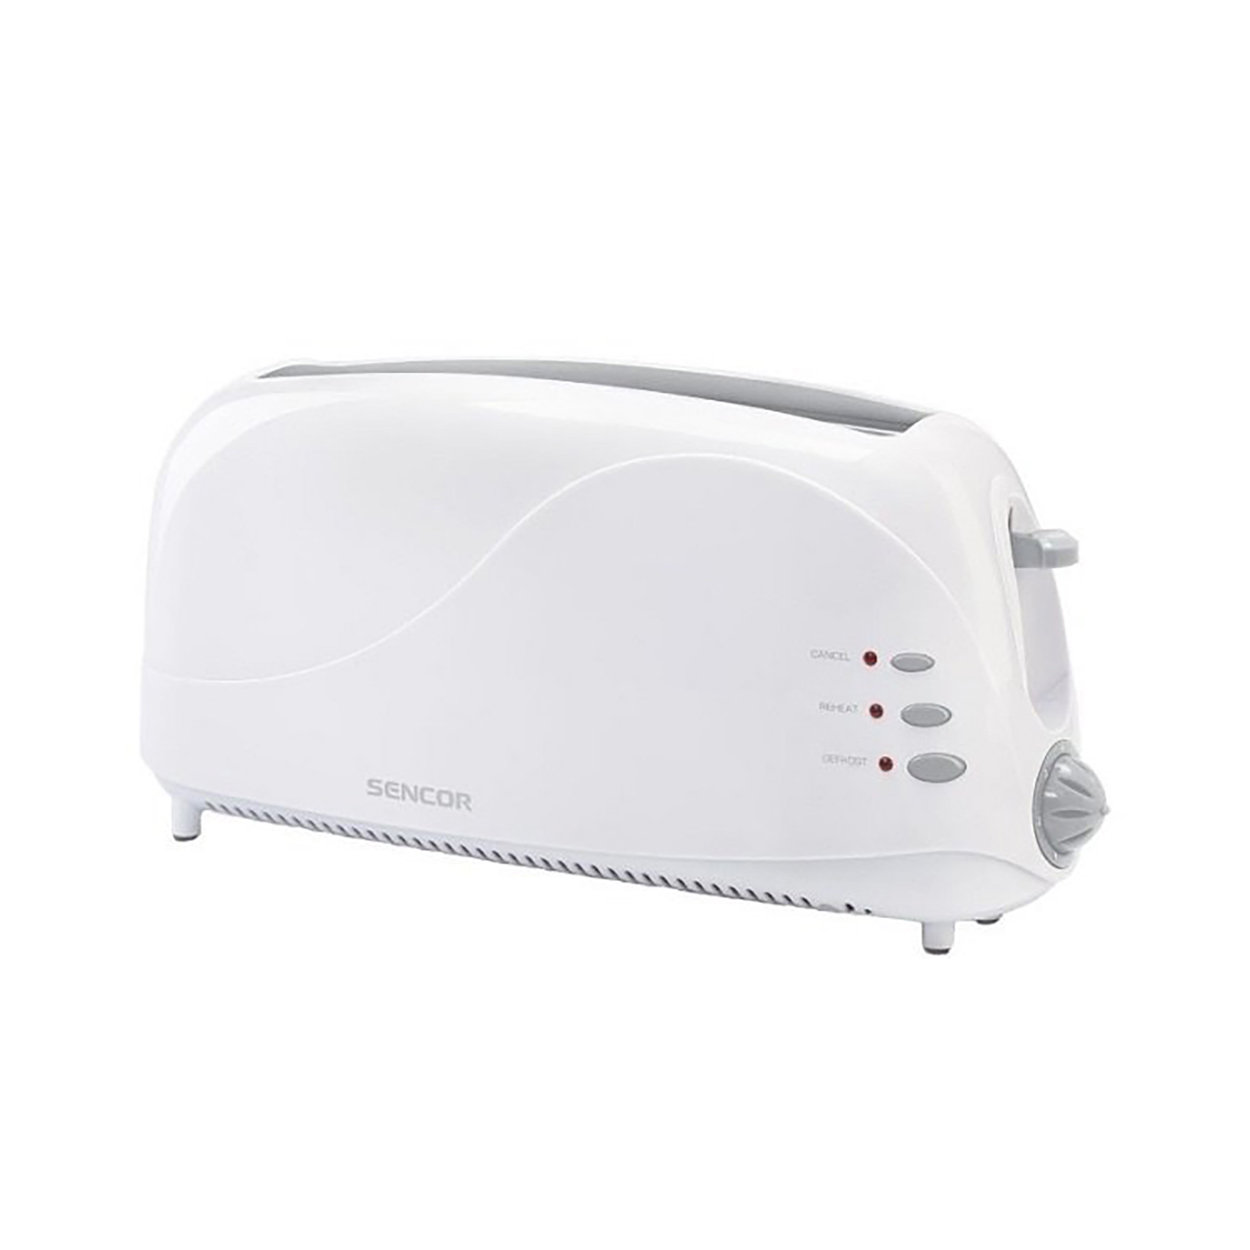 Image of Tostapane con timer,bianco